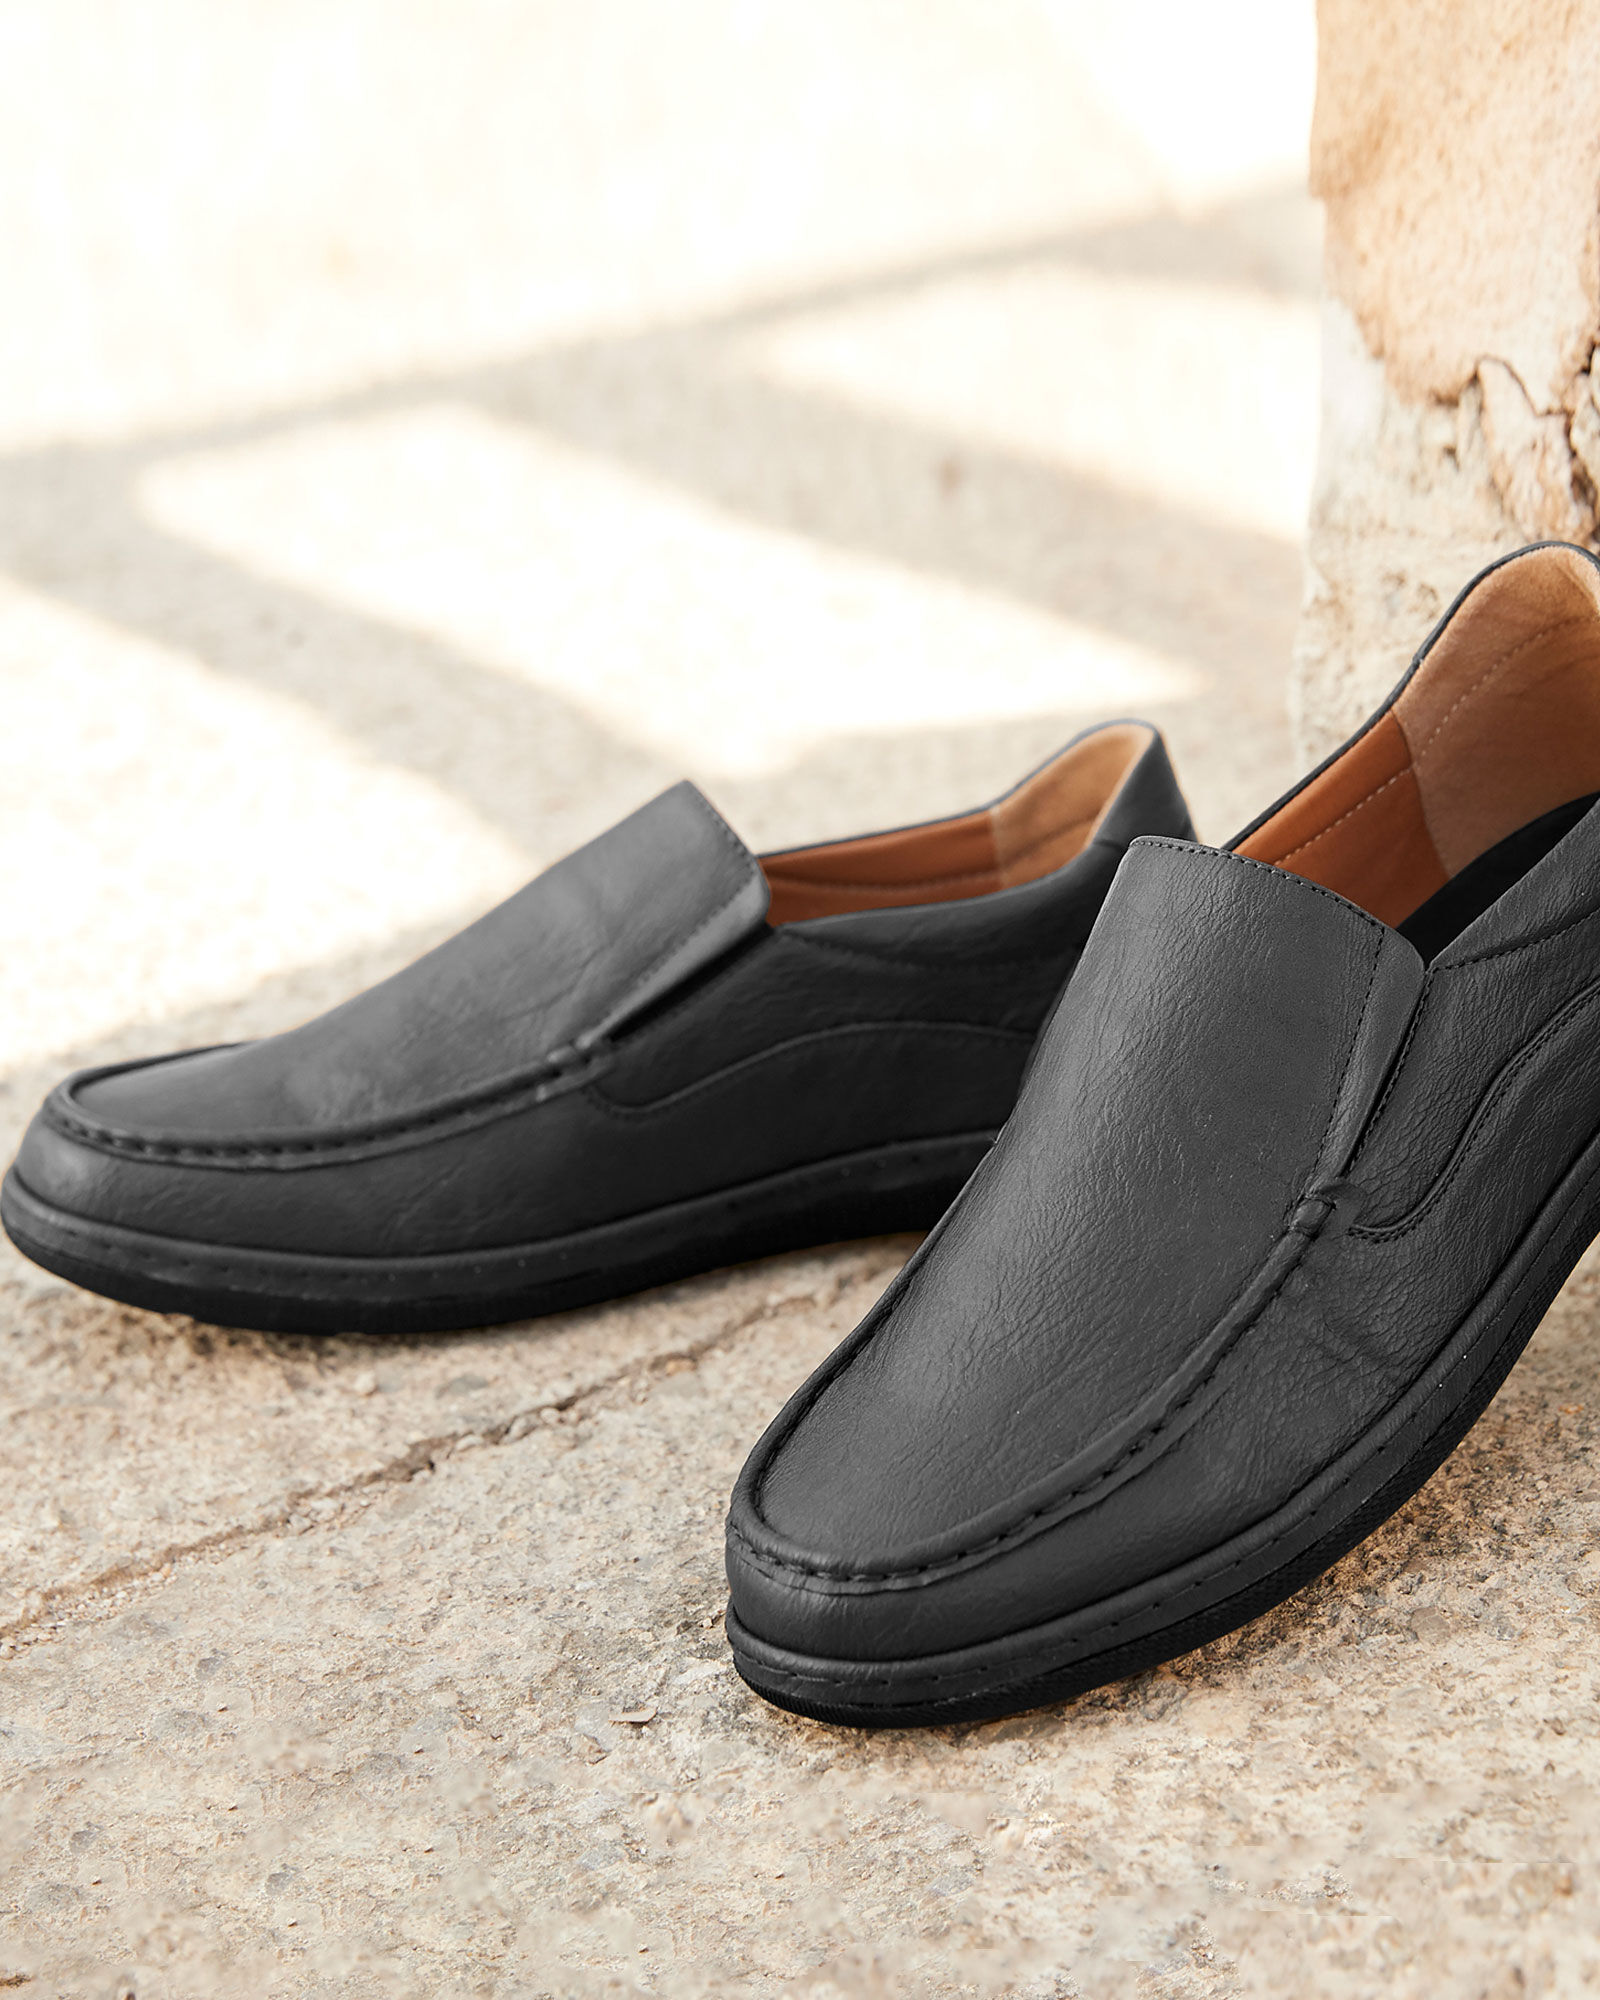 Dual Fit Slip-on Shoes at Cotton Traders